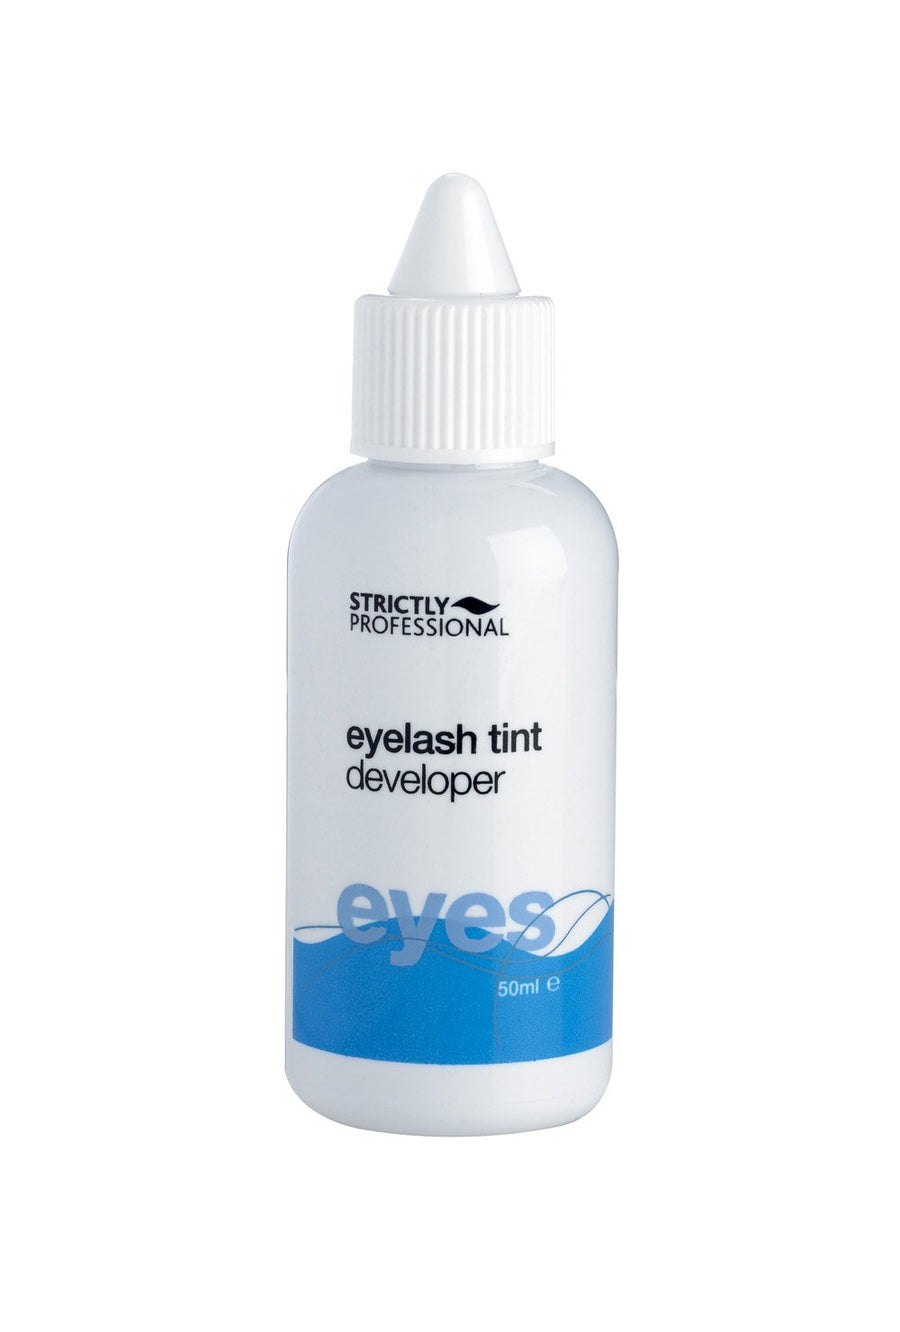 Eyelash Tint Developer - Precious About Make-up, (product_title),Eyelash Tint, Strictly Professional